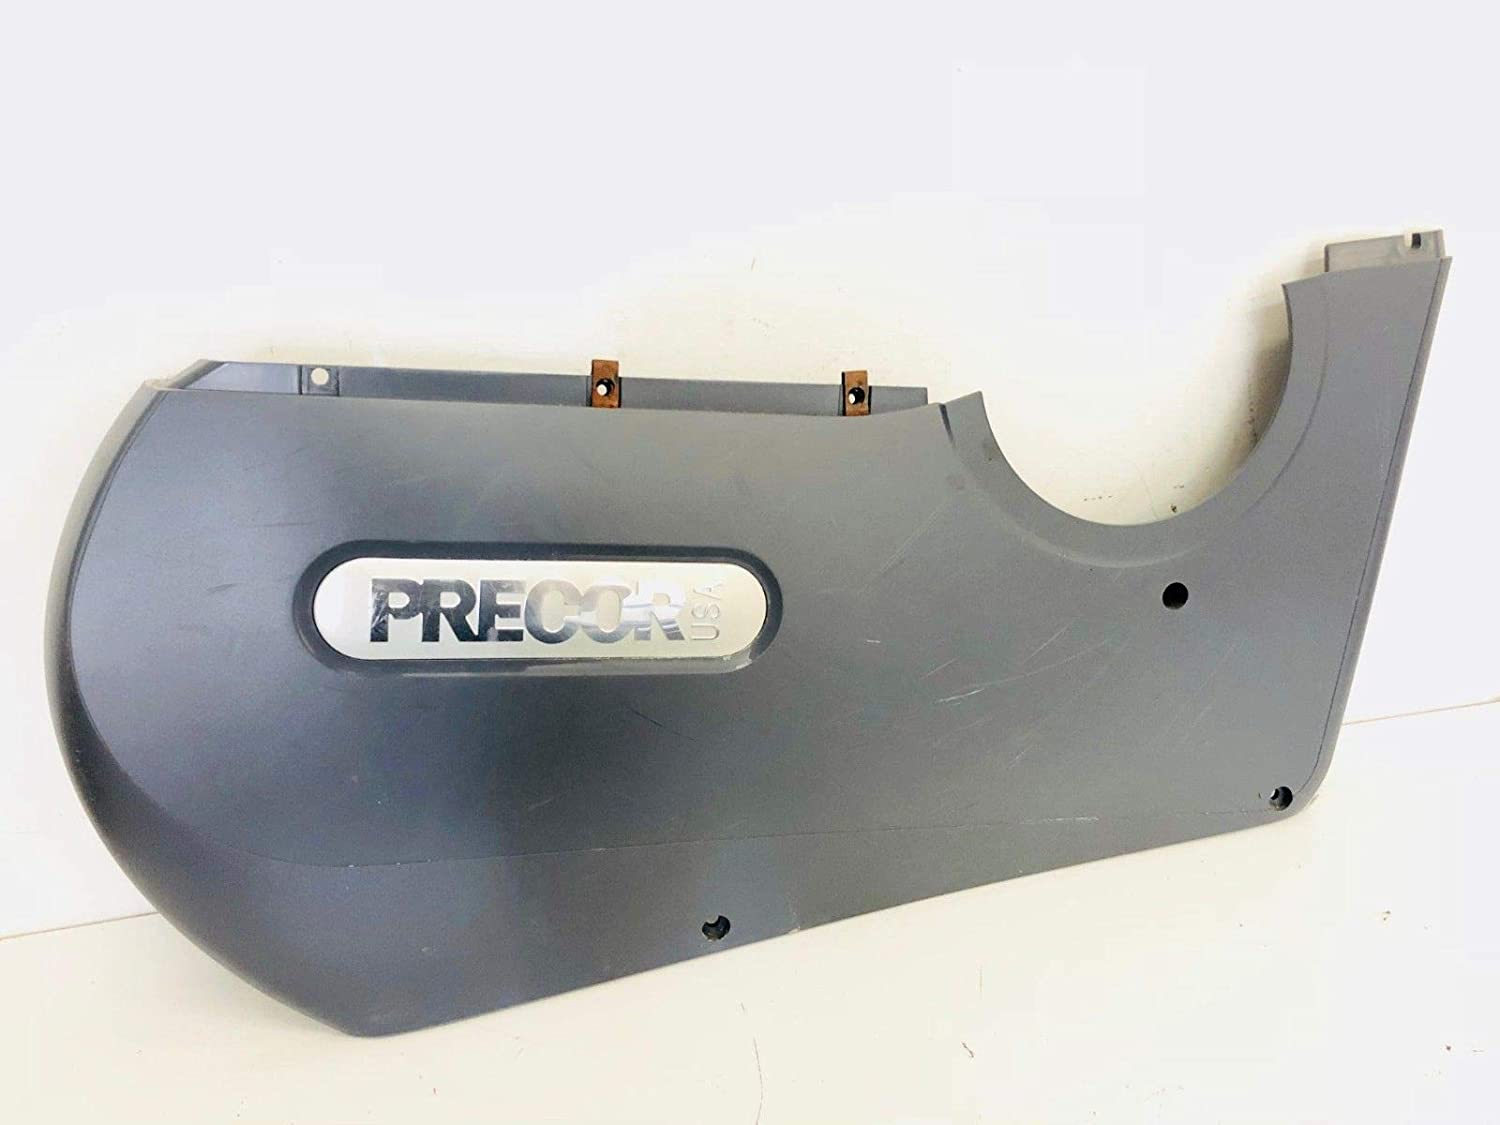 Precor Right Side Cover PPP000000049308102 Works C842i C846I SP Recumbent Bike